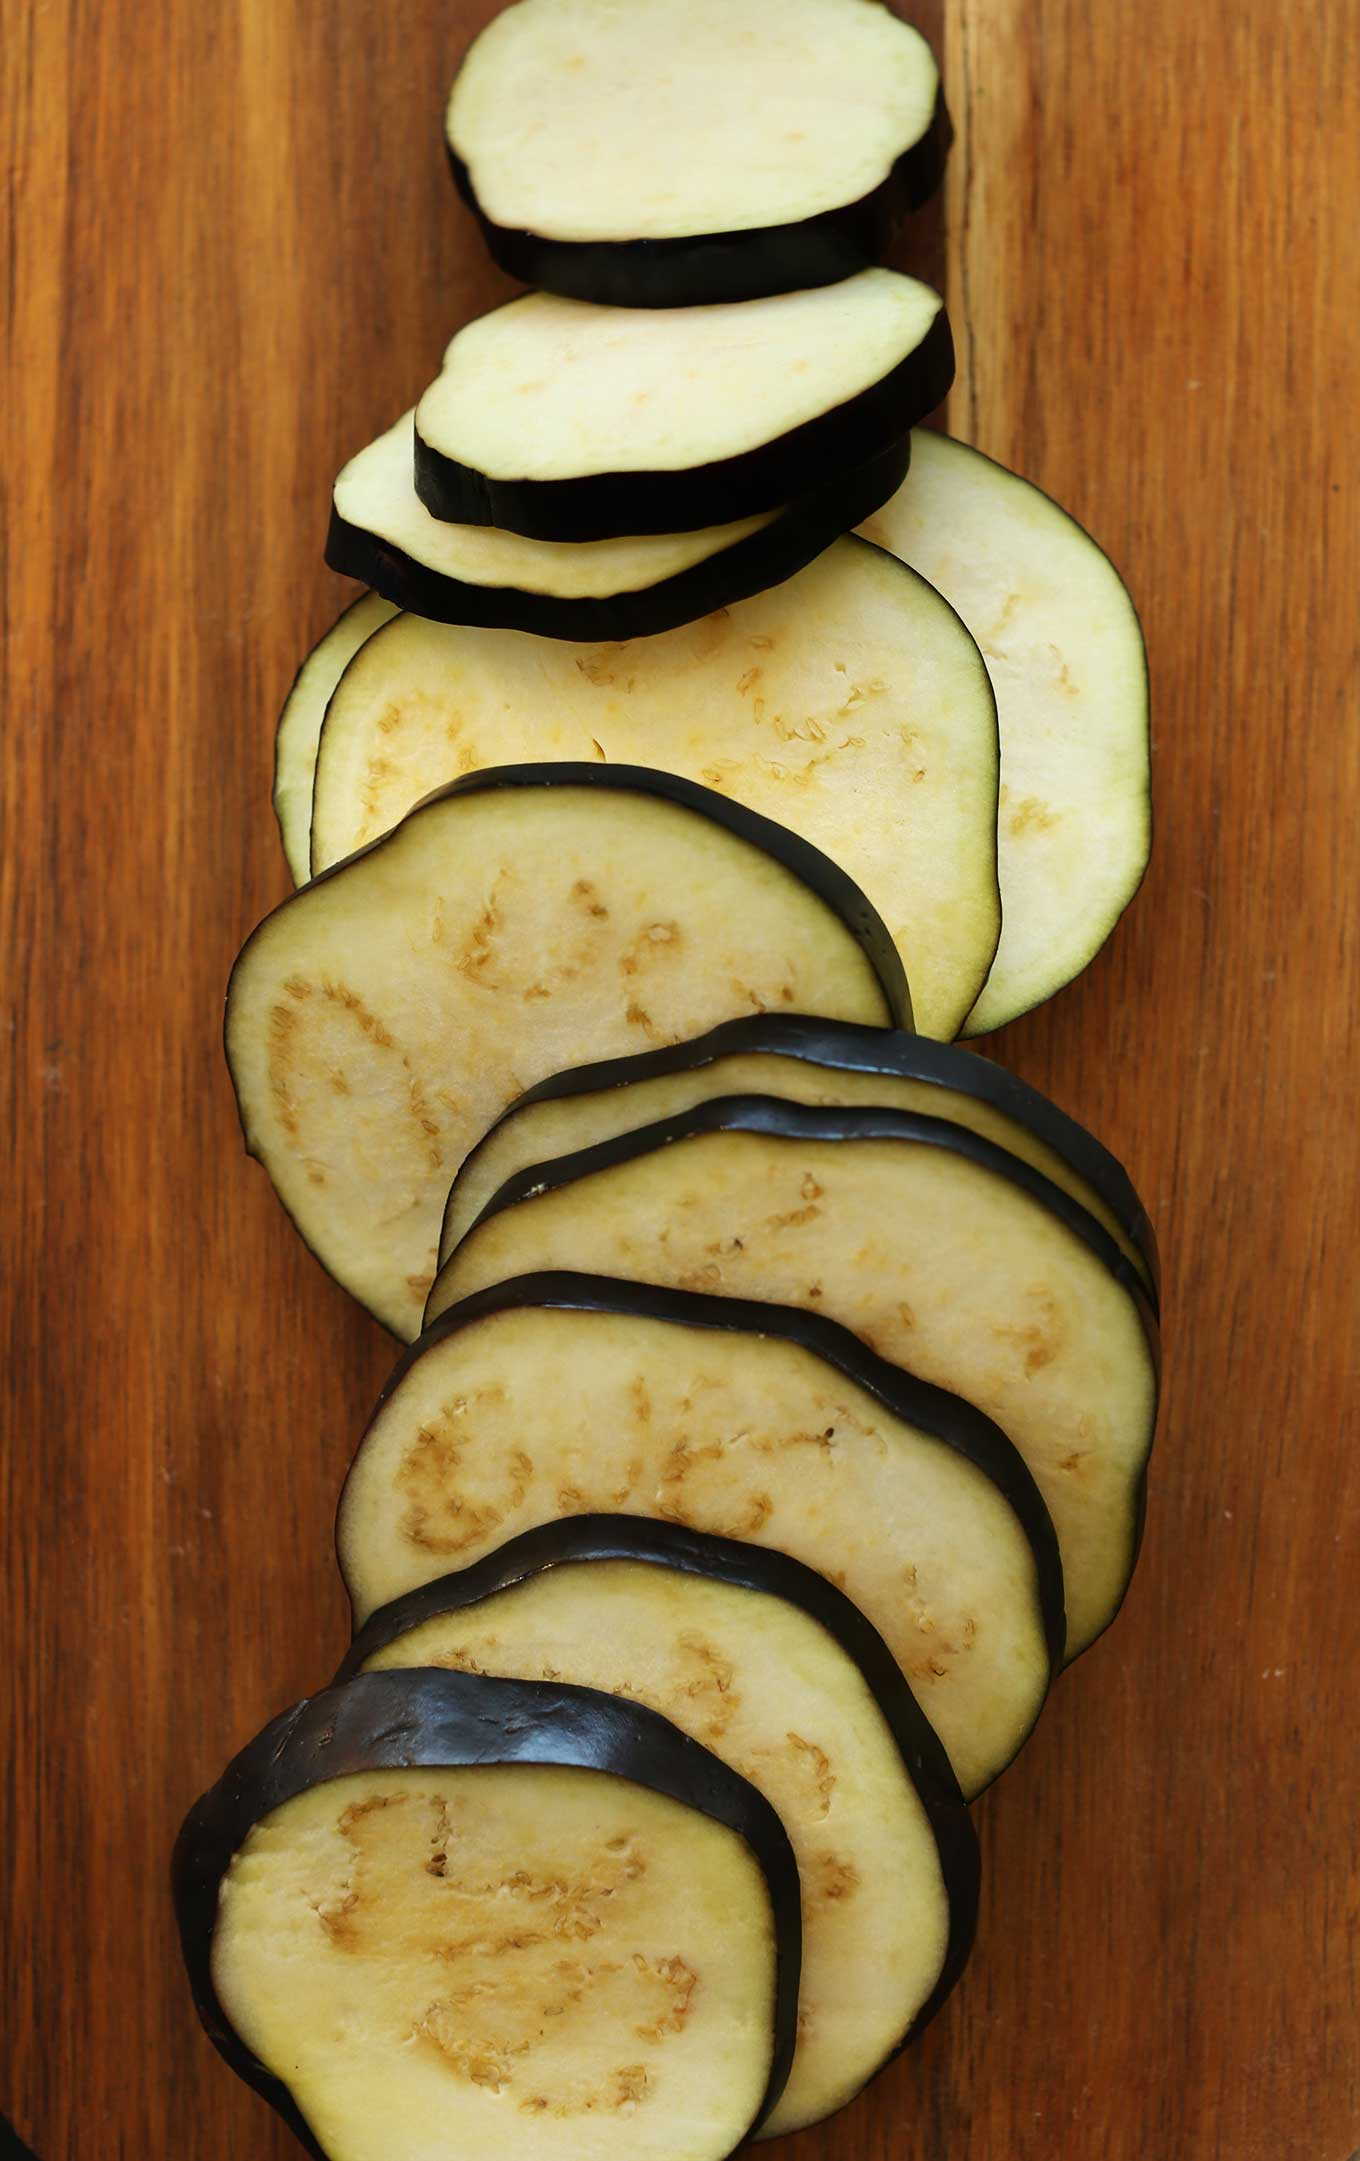 Thinly sliced eggplant on a cutting board